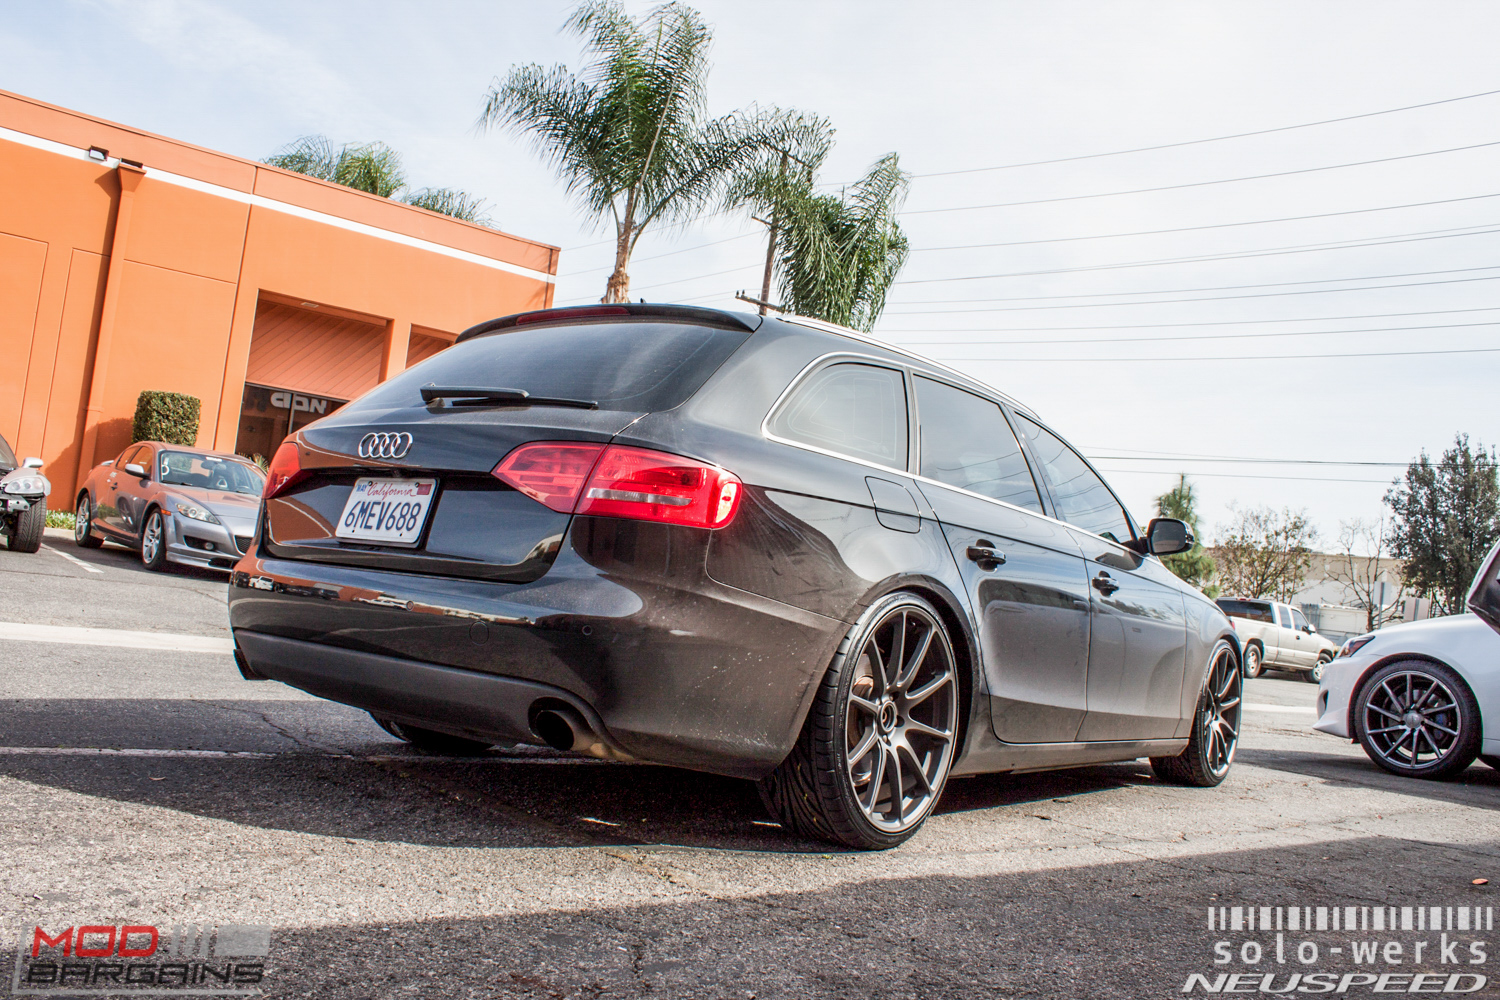 B8 Audi A4 Avant On Solo Werks Coilovers Gets Rse102 Rims